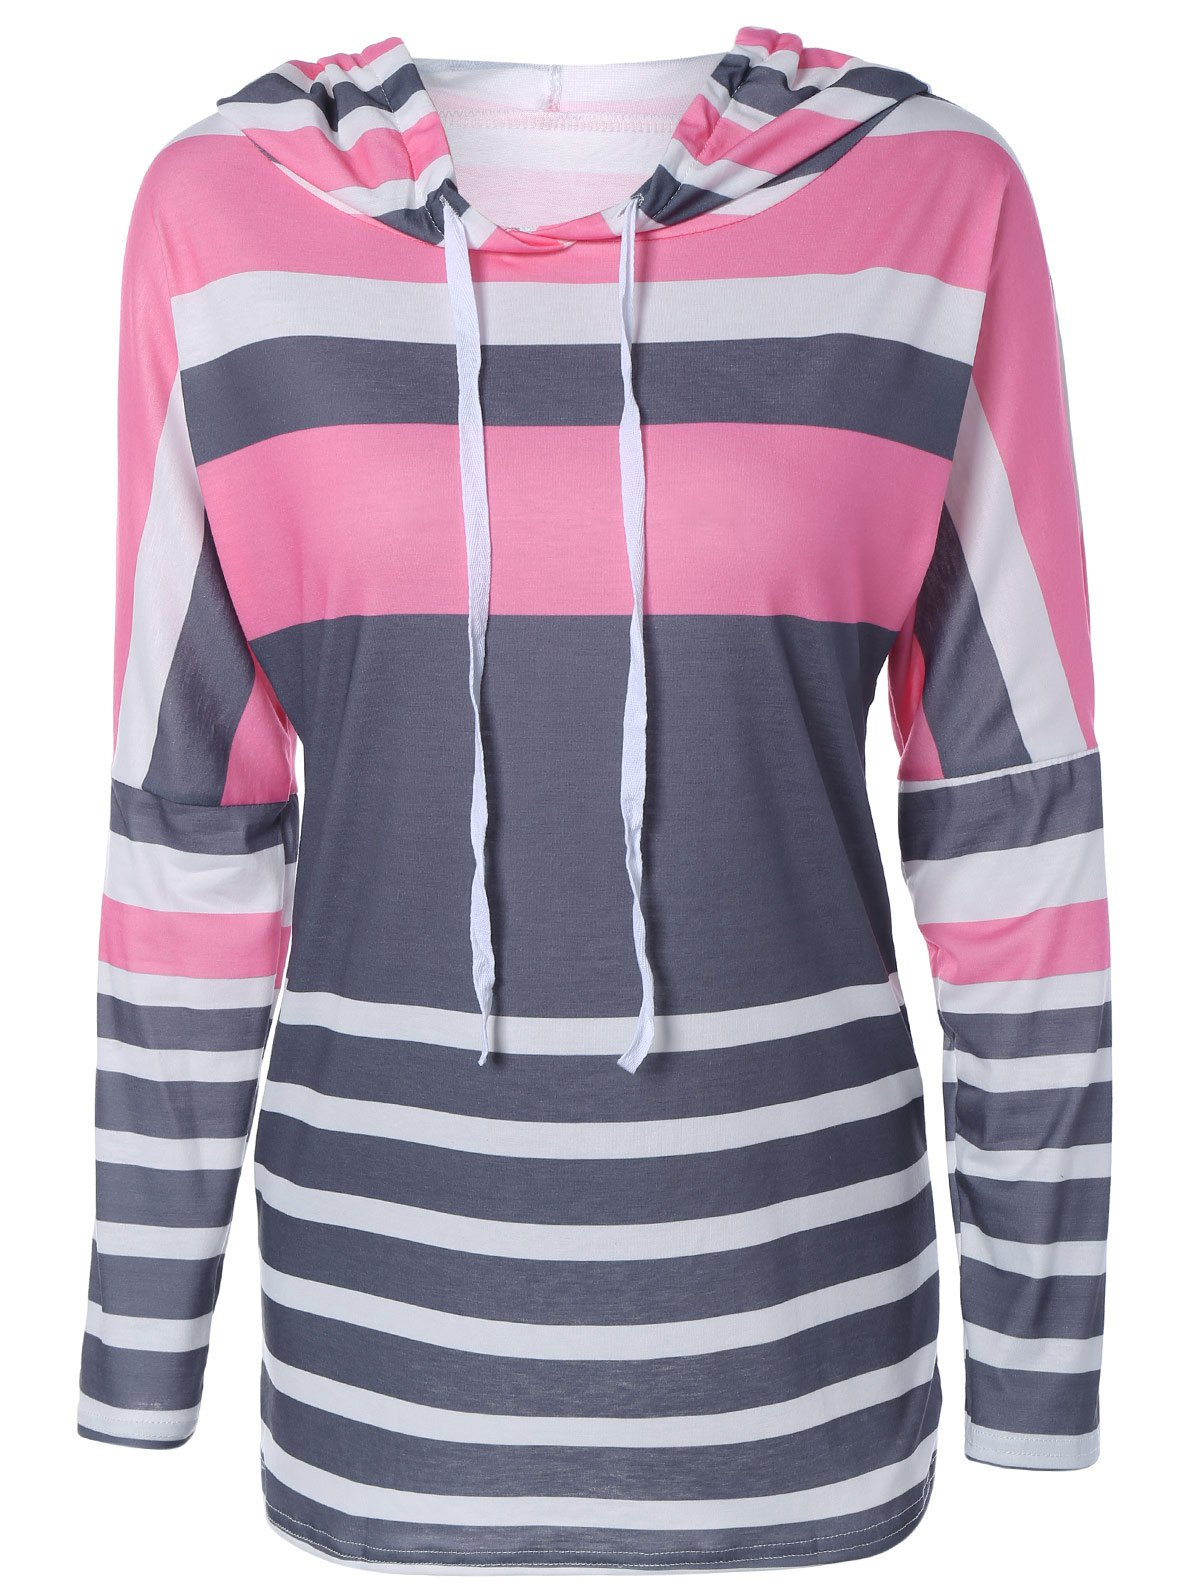 Fashionable Long Sleeve Color Block Hoodie For Women - PINK / GRAY XL